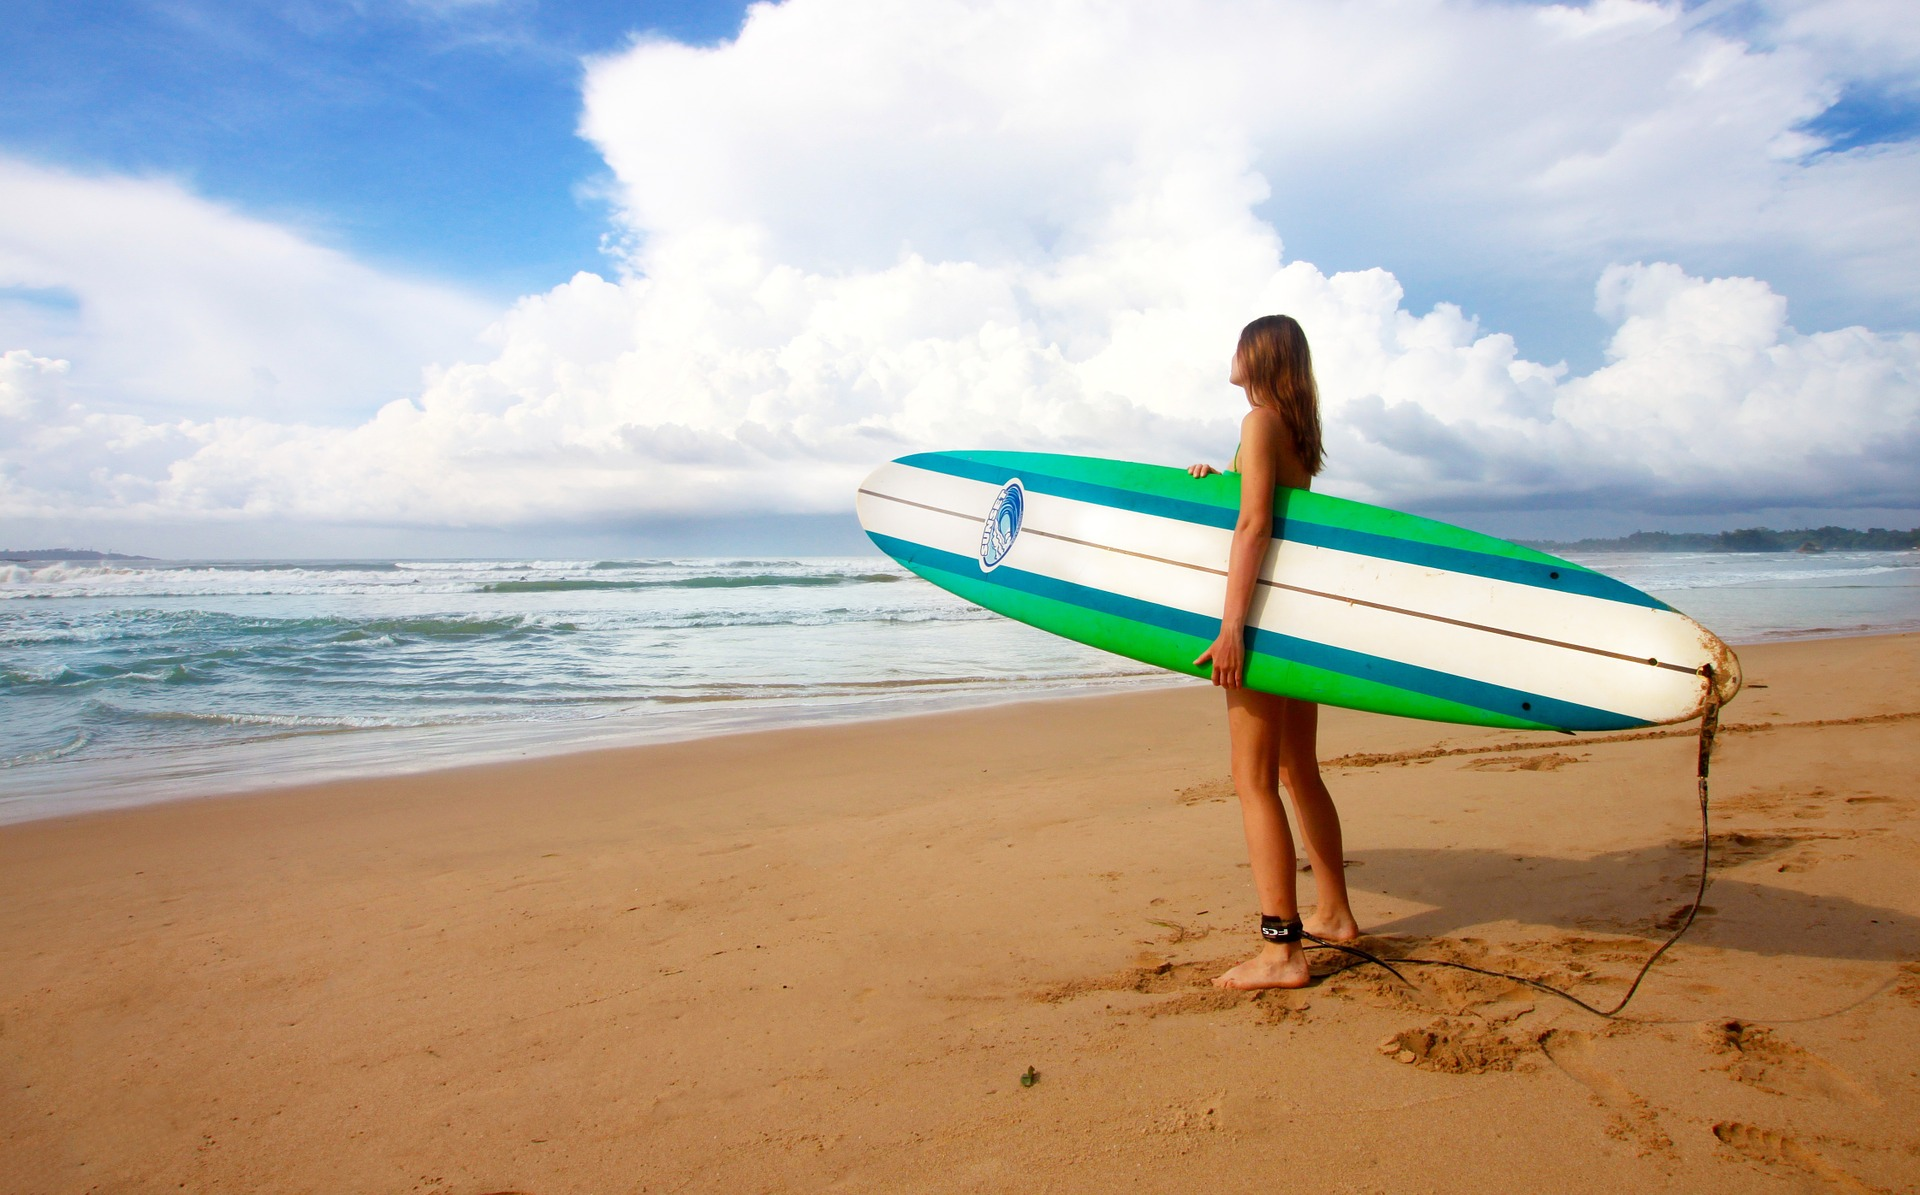 Top 3 Places For Winter Surfing!